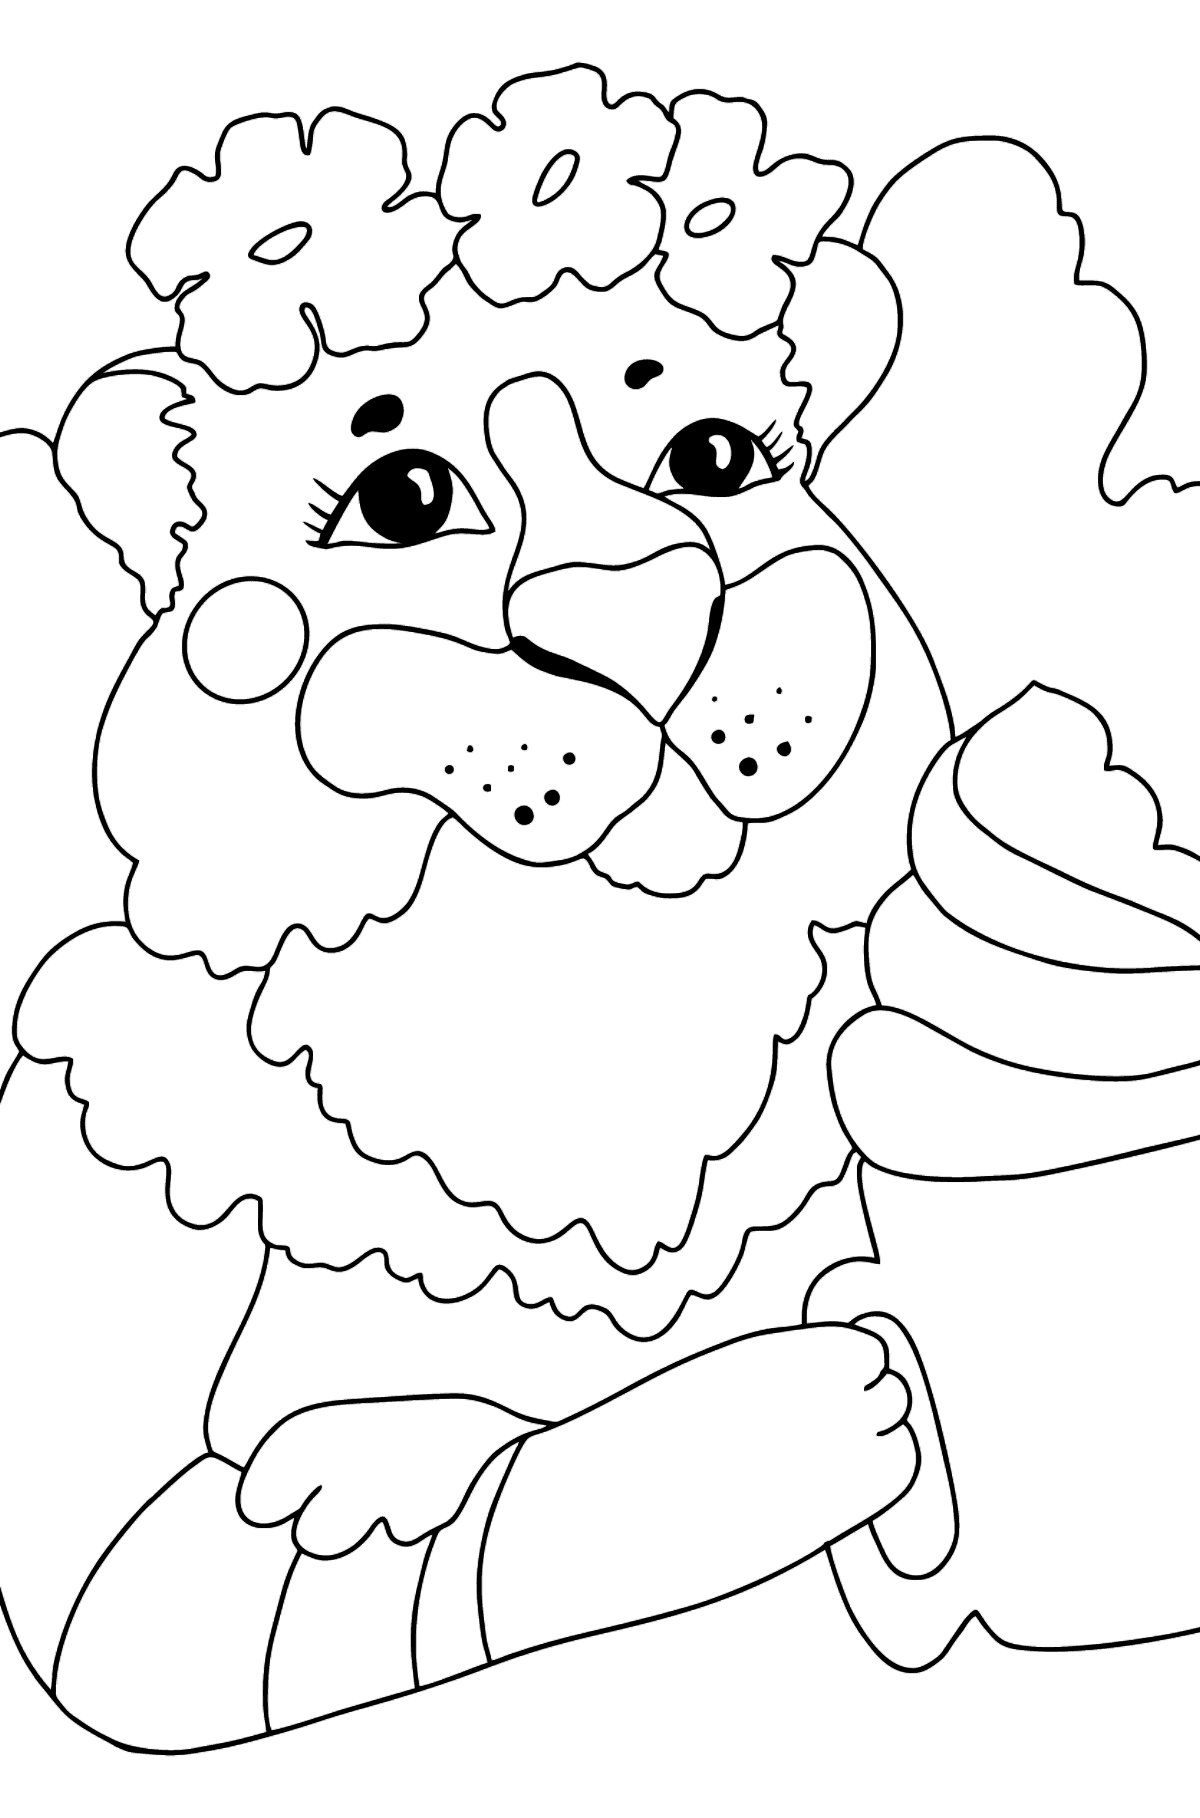 Coloring Page - A Tigress Loves Hot Chocolate - Coloring Pages for Kids